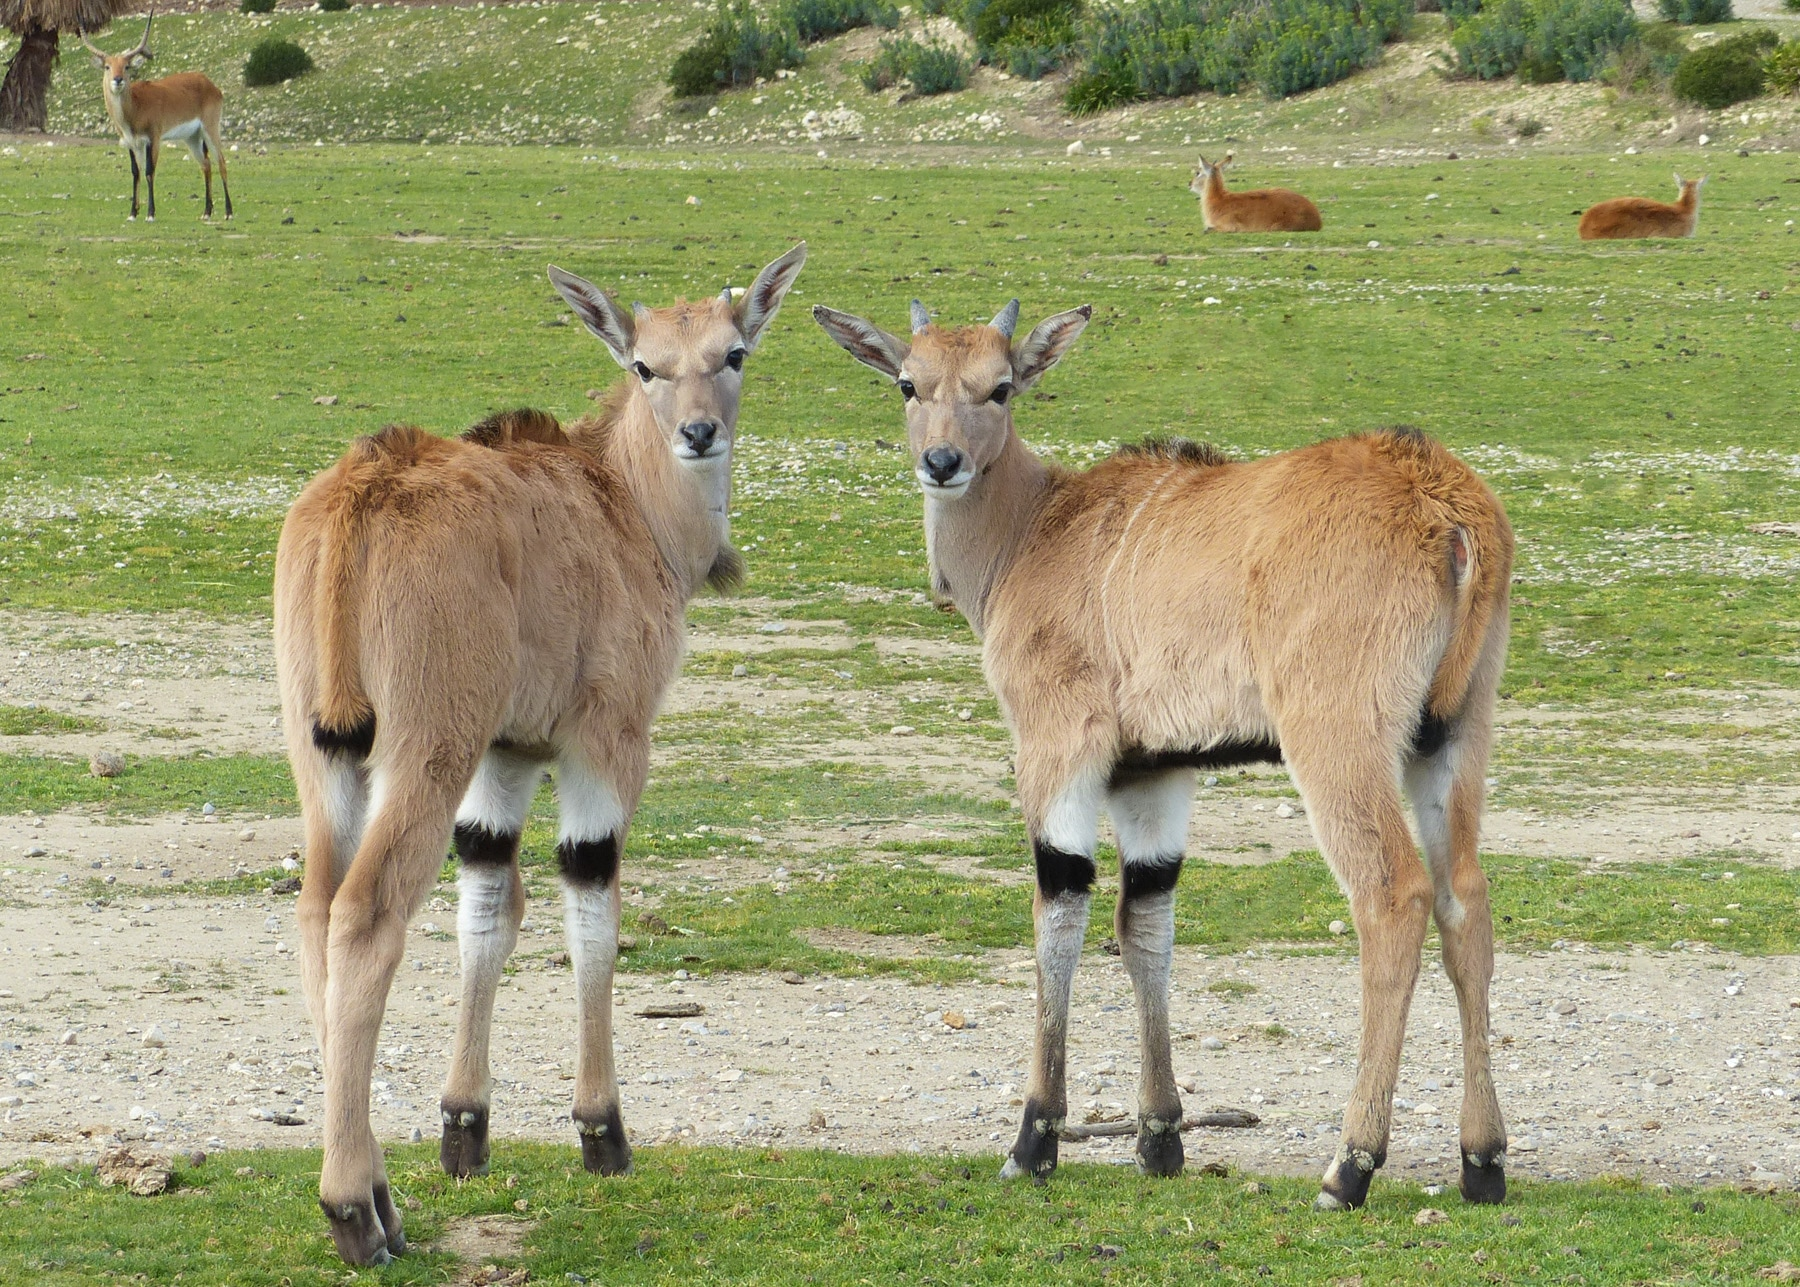 Cape Elands born at la Réserve Africaine de Sigean